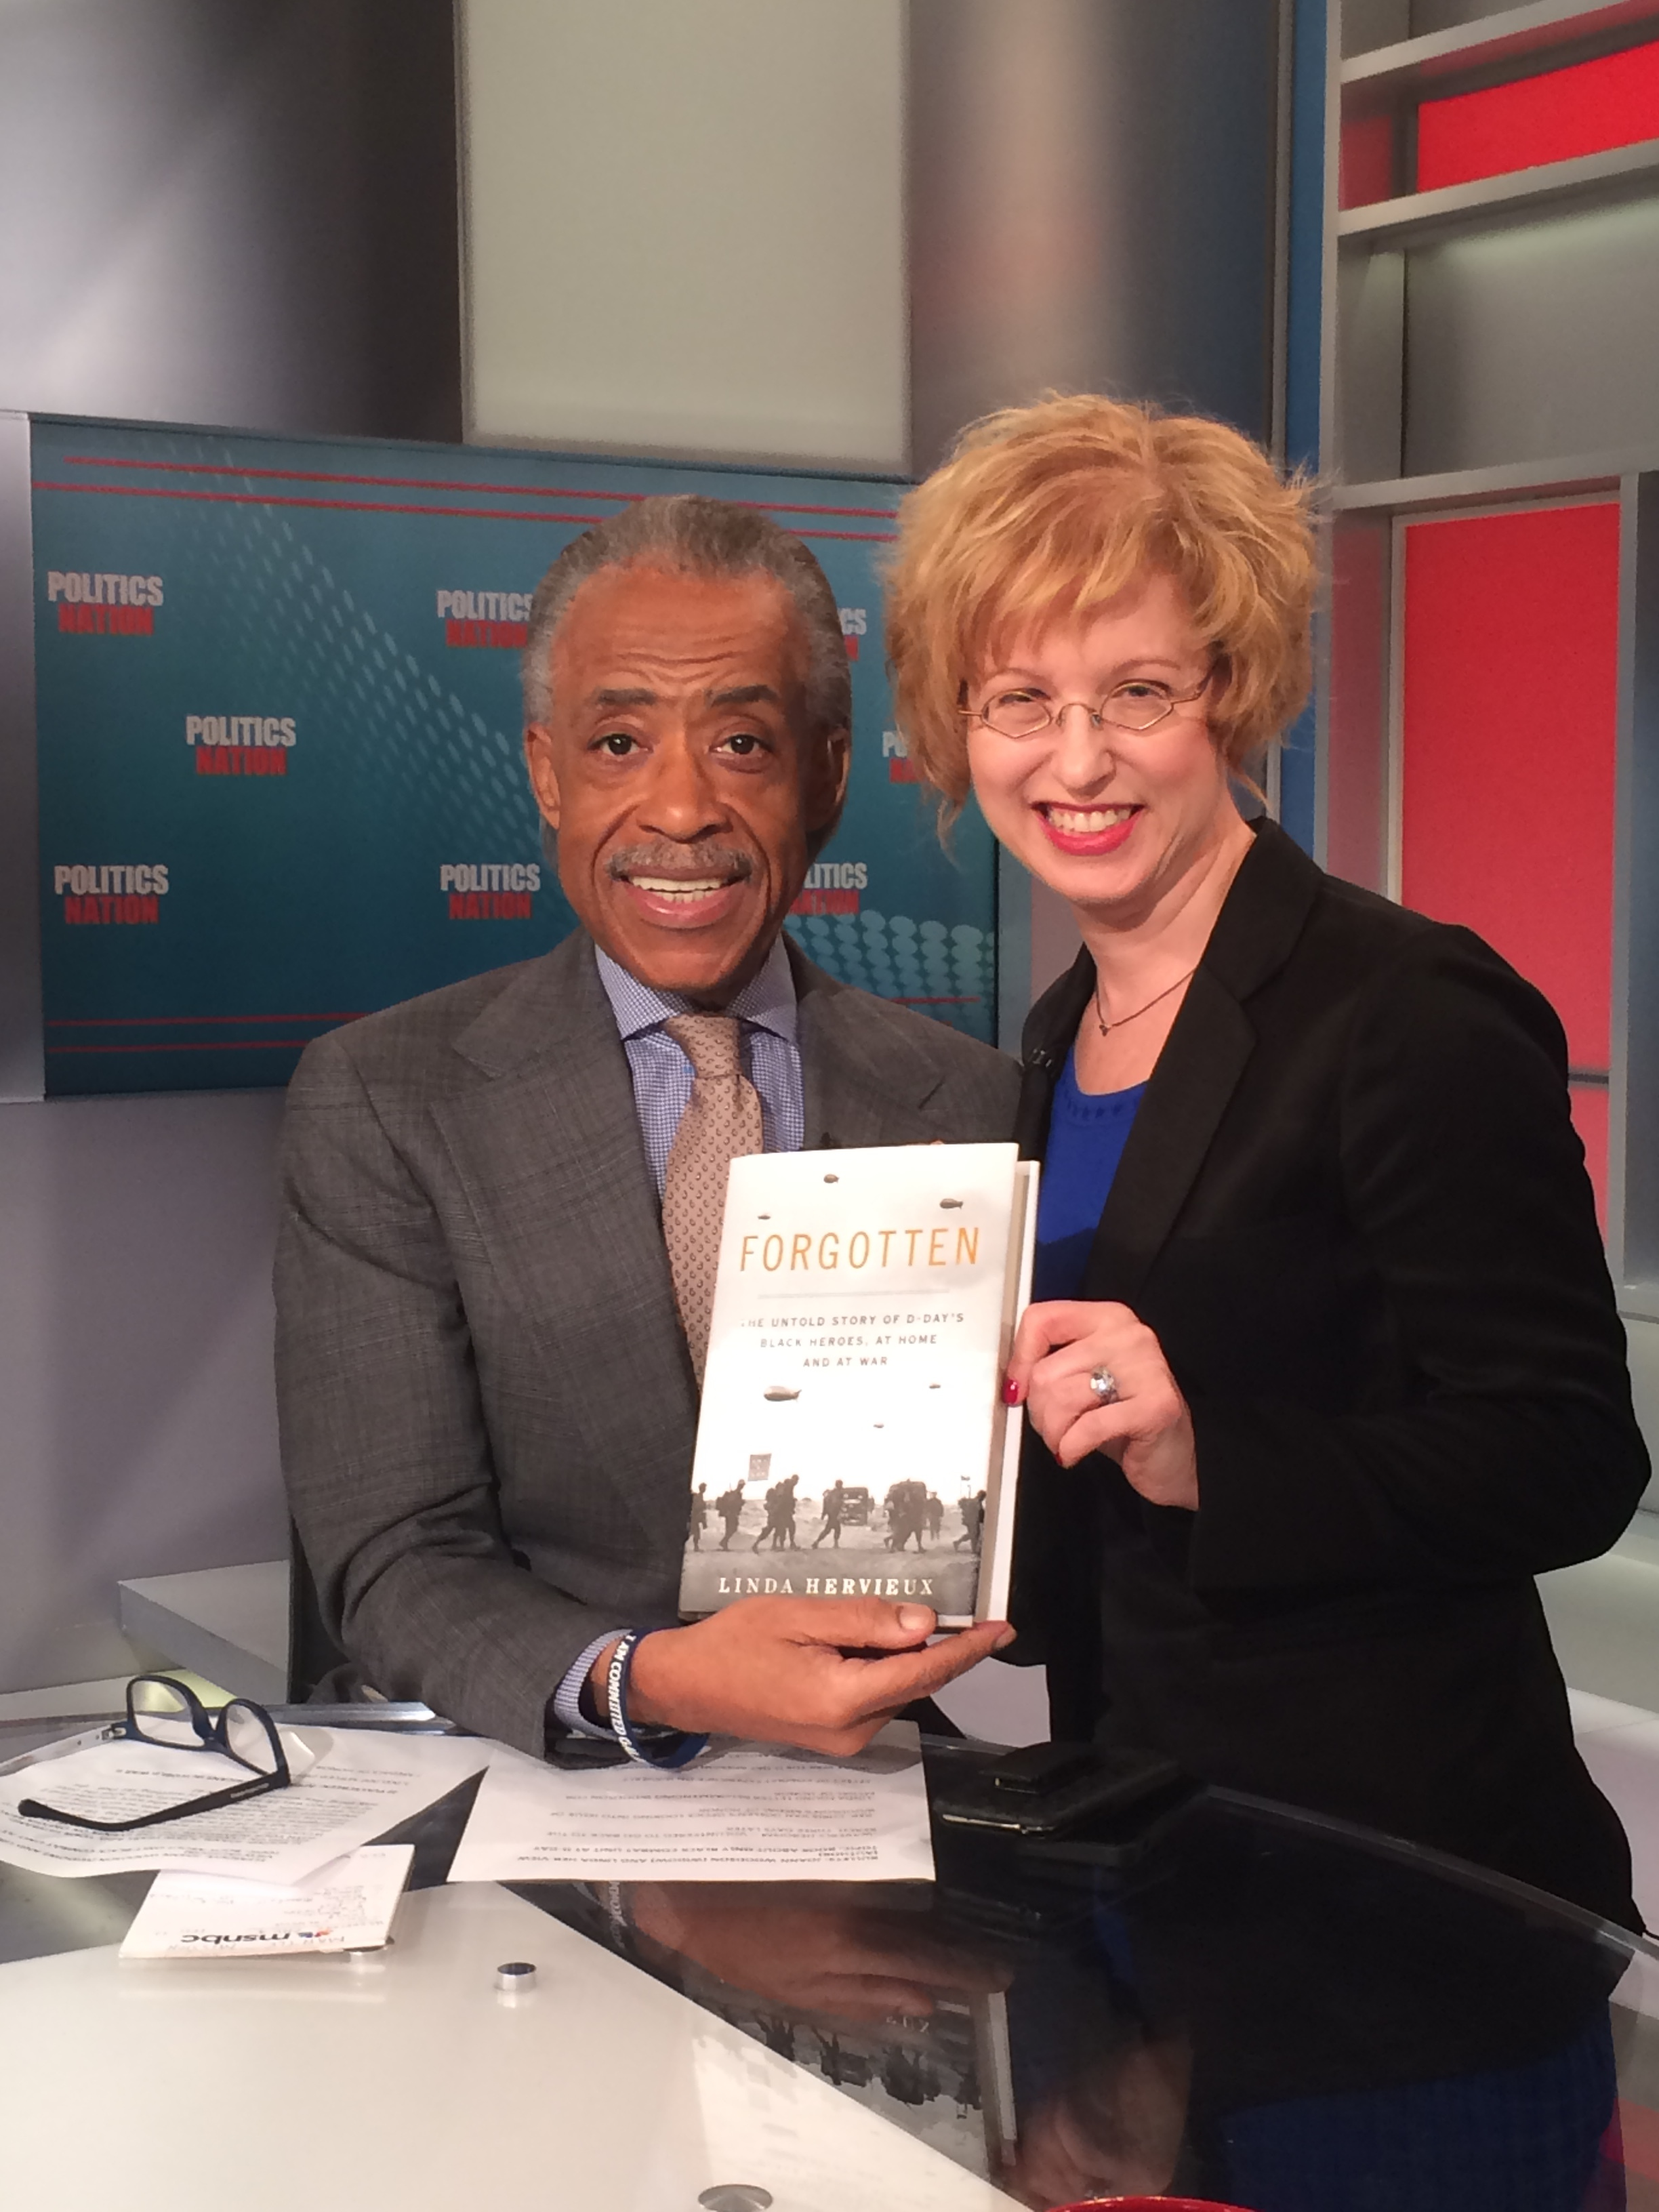 Al Sharpton interviewed Linda Hervieux at MSNBC's studios in Rockefeller Center.